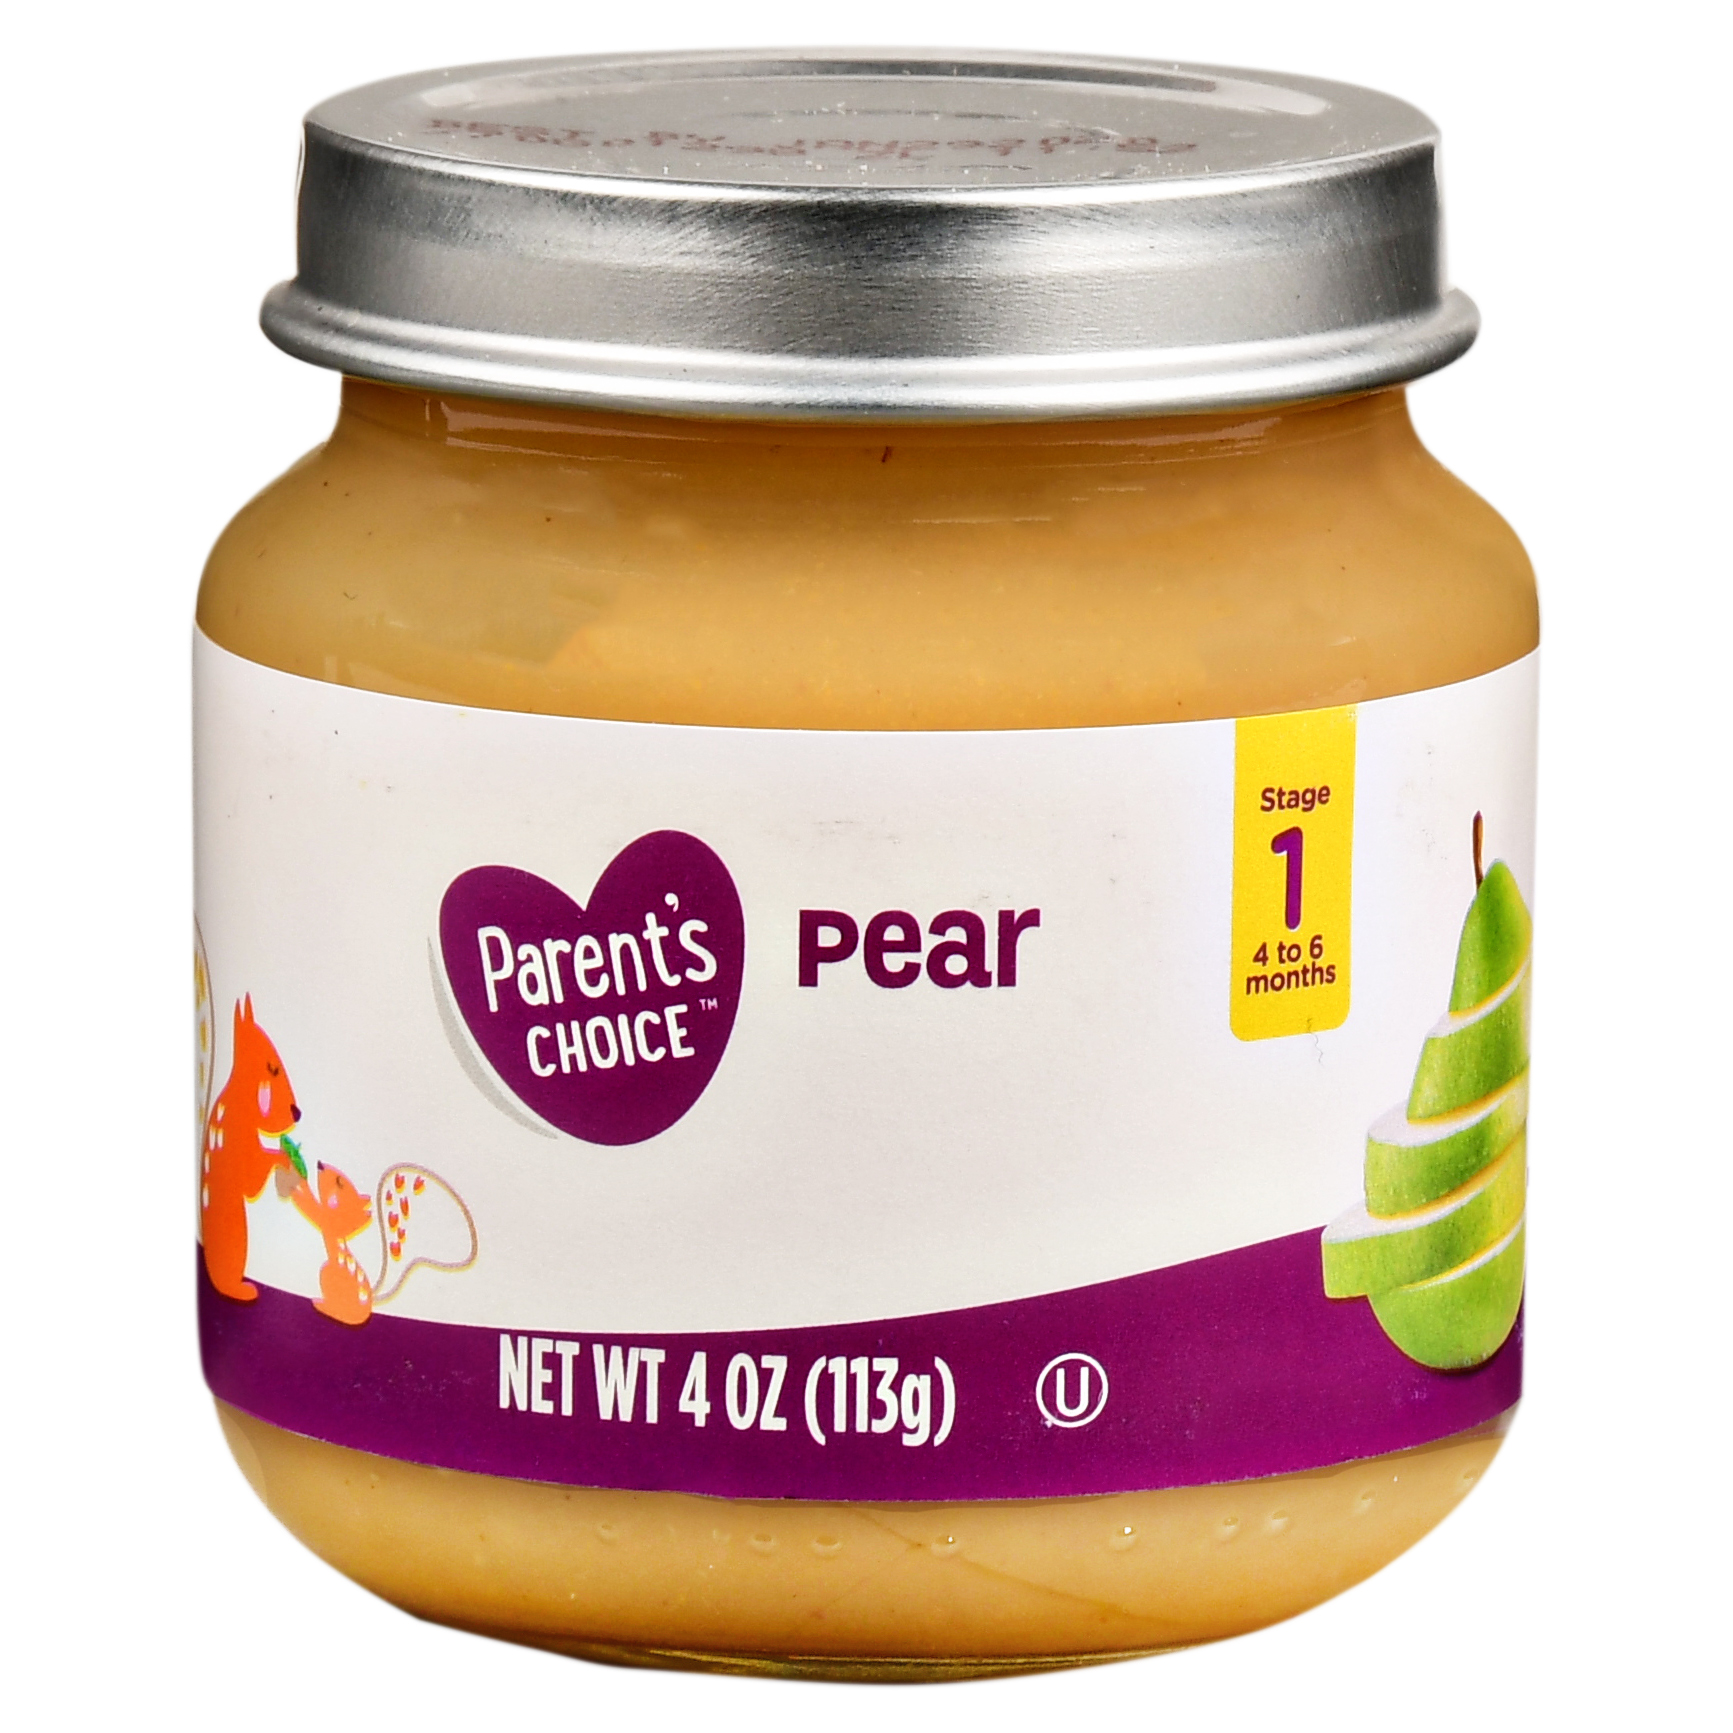 Parent's Choice Baby Food, Pear, Stage 1, 4 oz